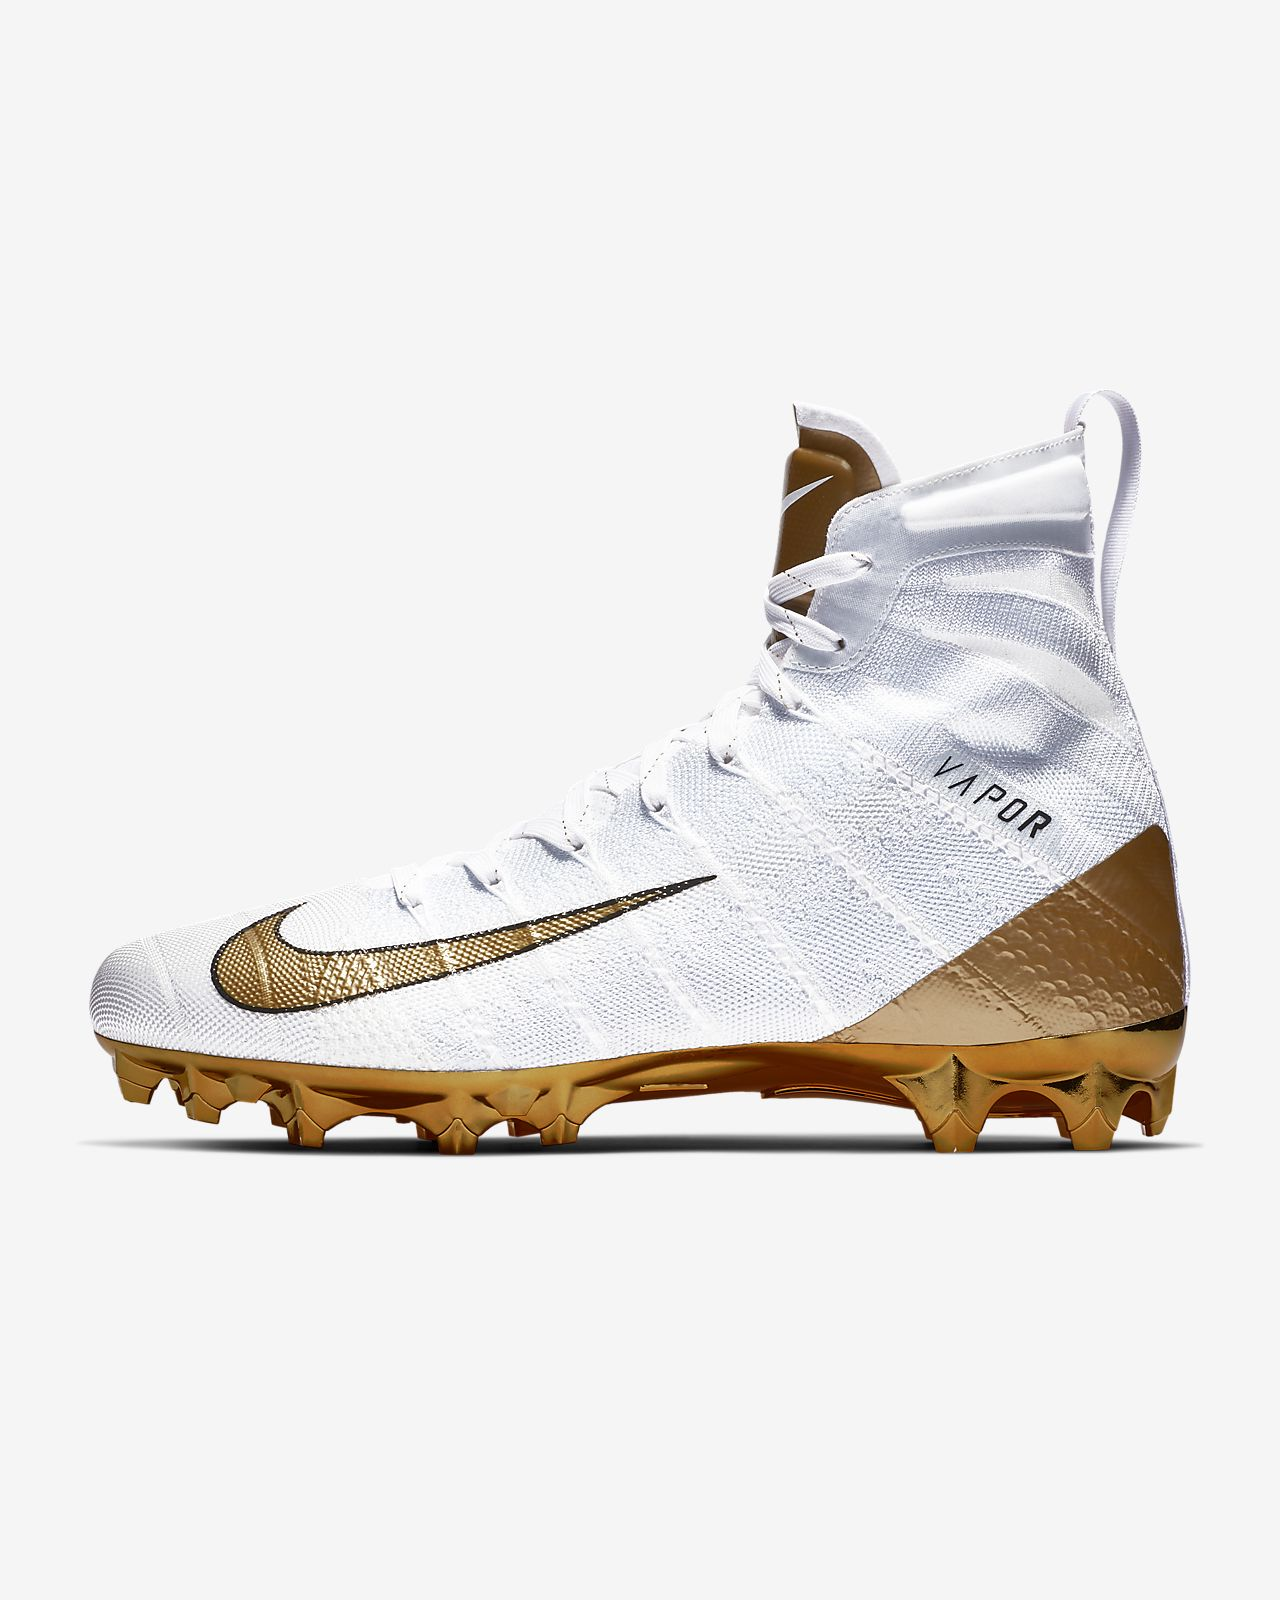 4314c63d7 Nike Vapor Untouchable 3 Elite Football Cleat. Nike.com